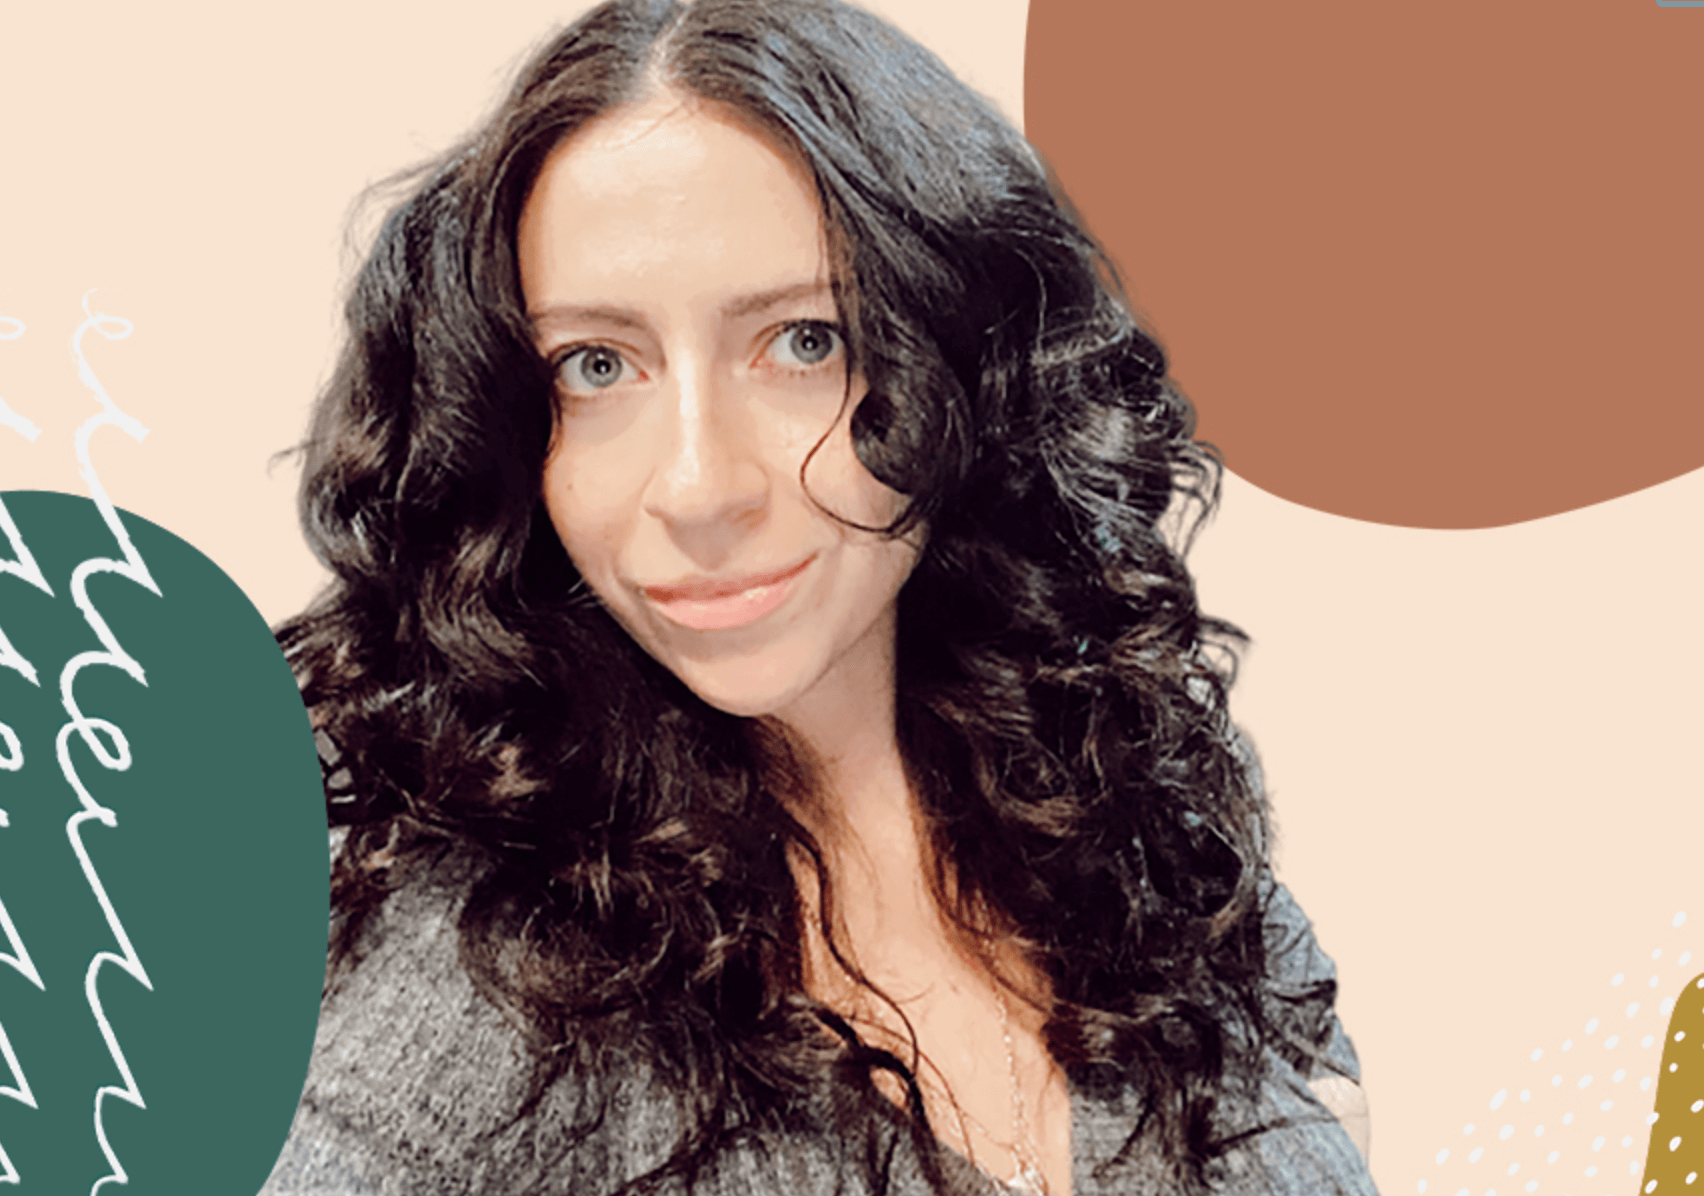 Hello Giggles, How to achieve the deconstructed curly girl look in 10 easy steps, according to experts